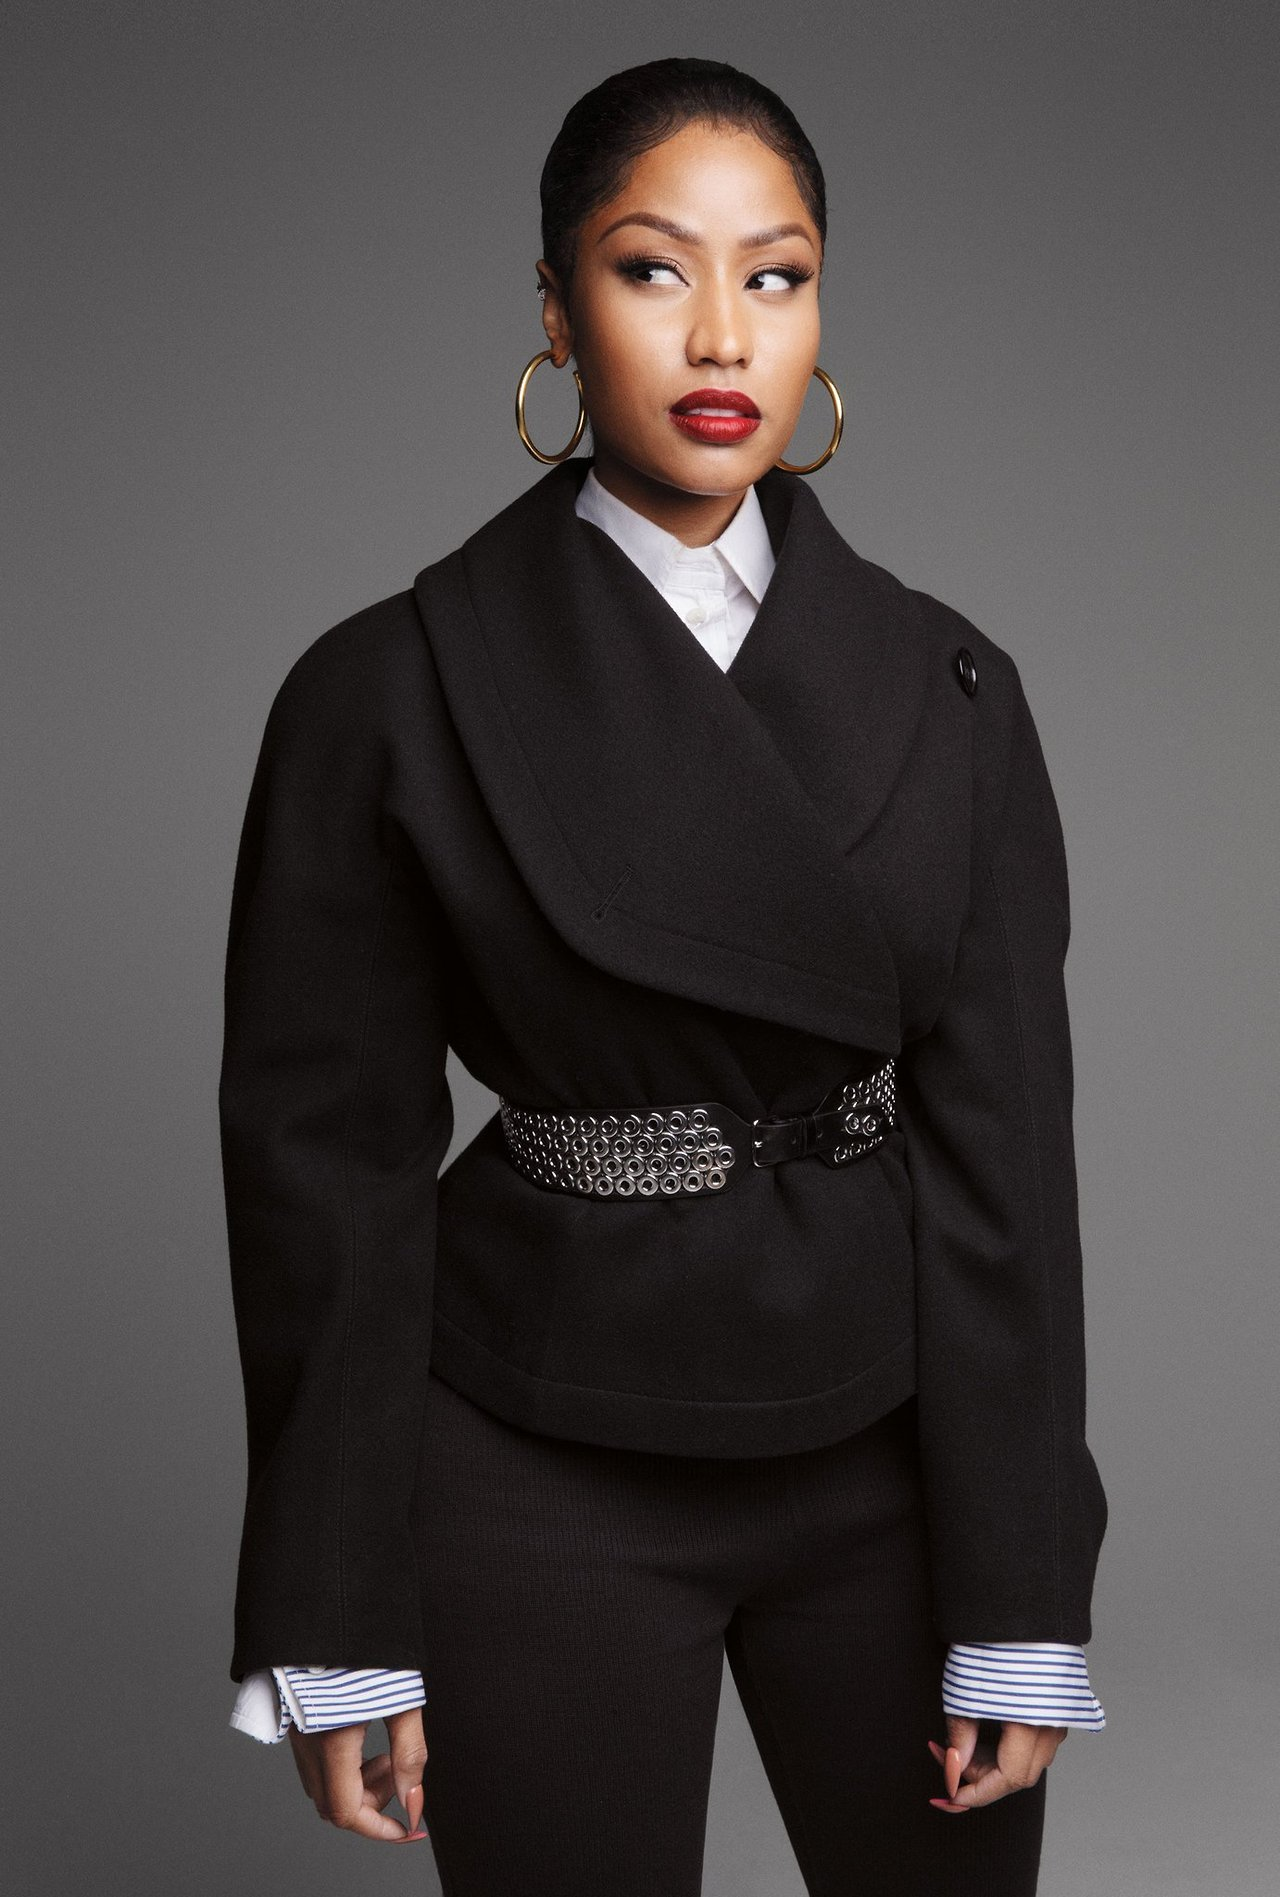 Nicki Minaj Has A New Look For T The New York Times Style